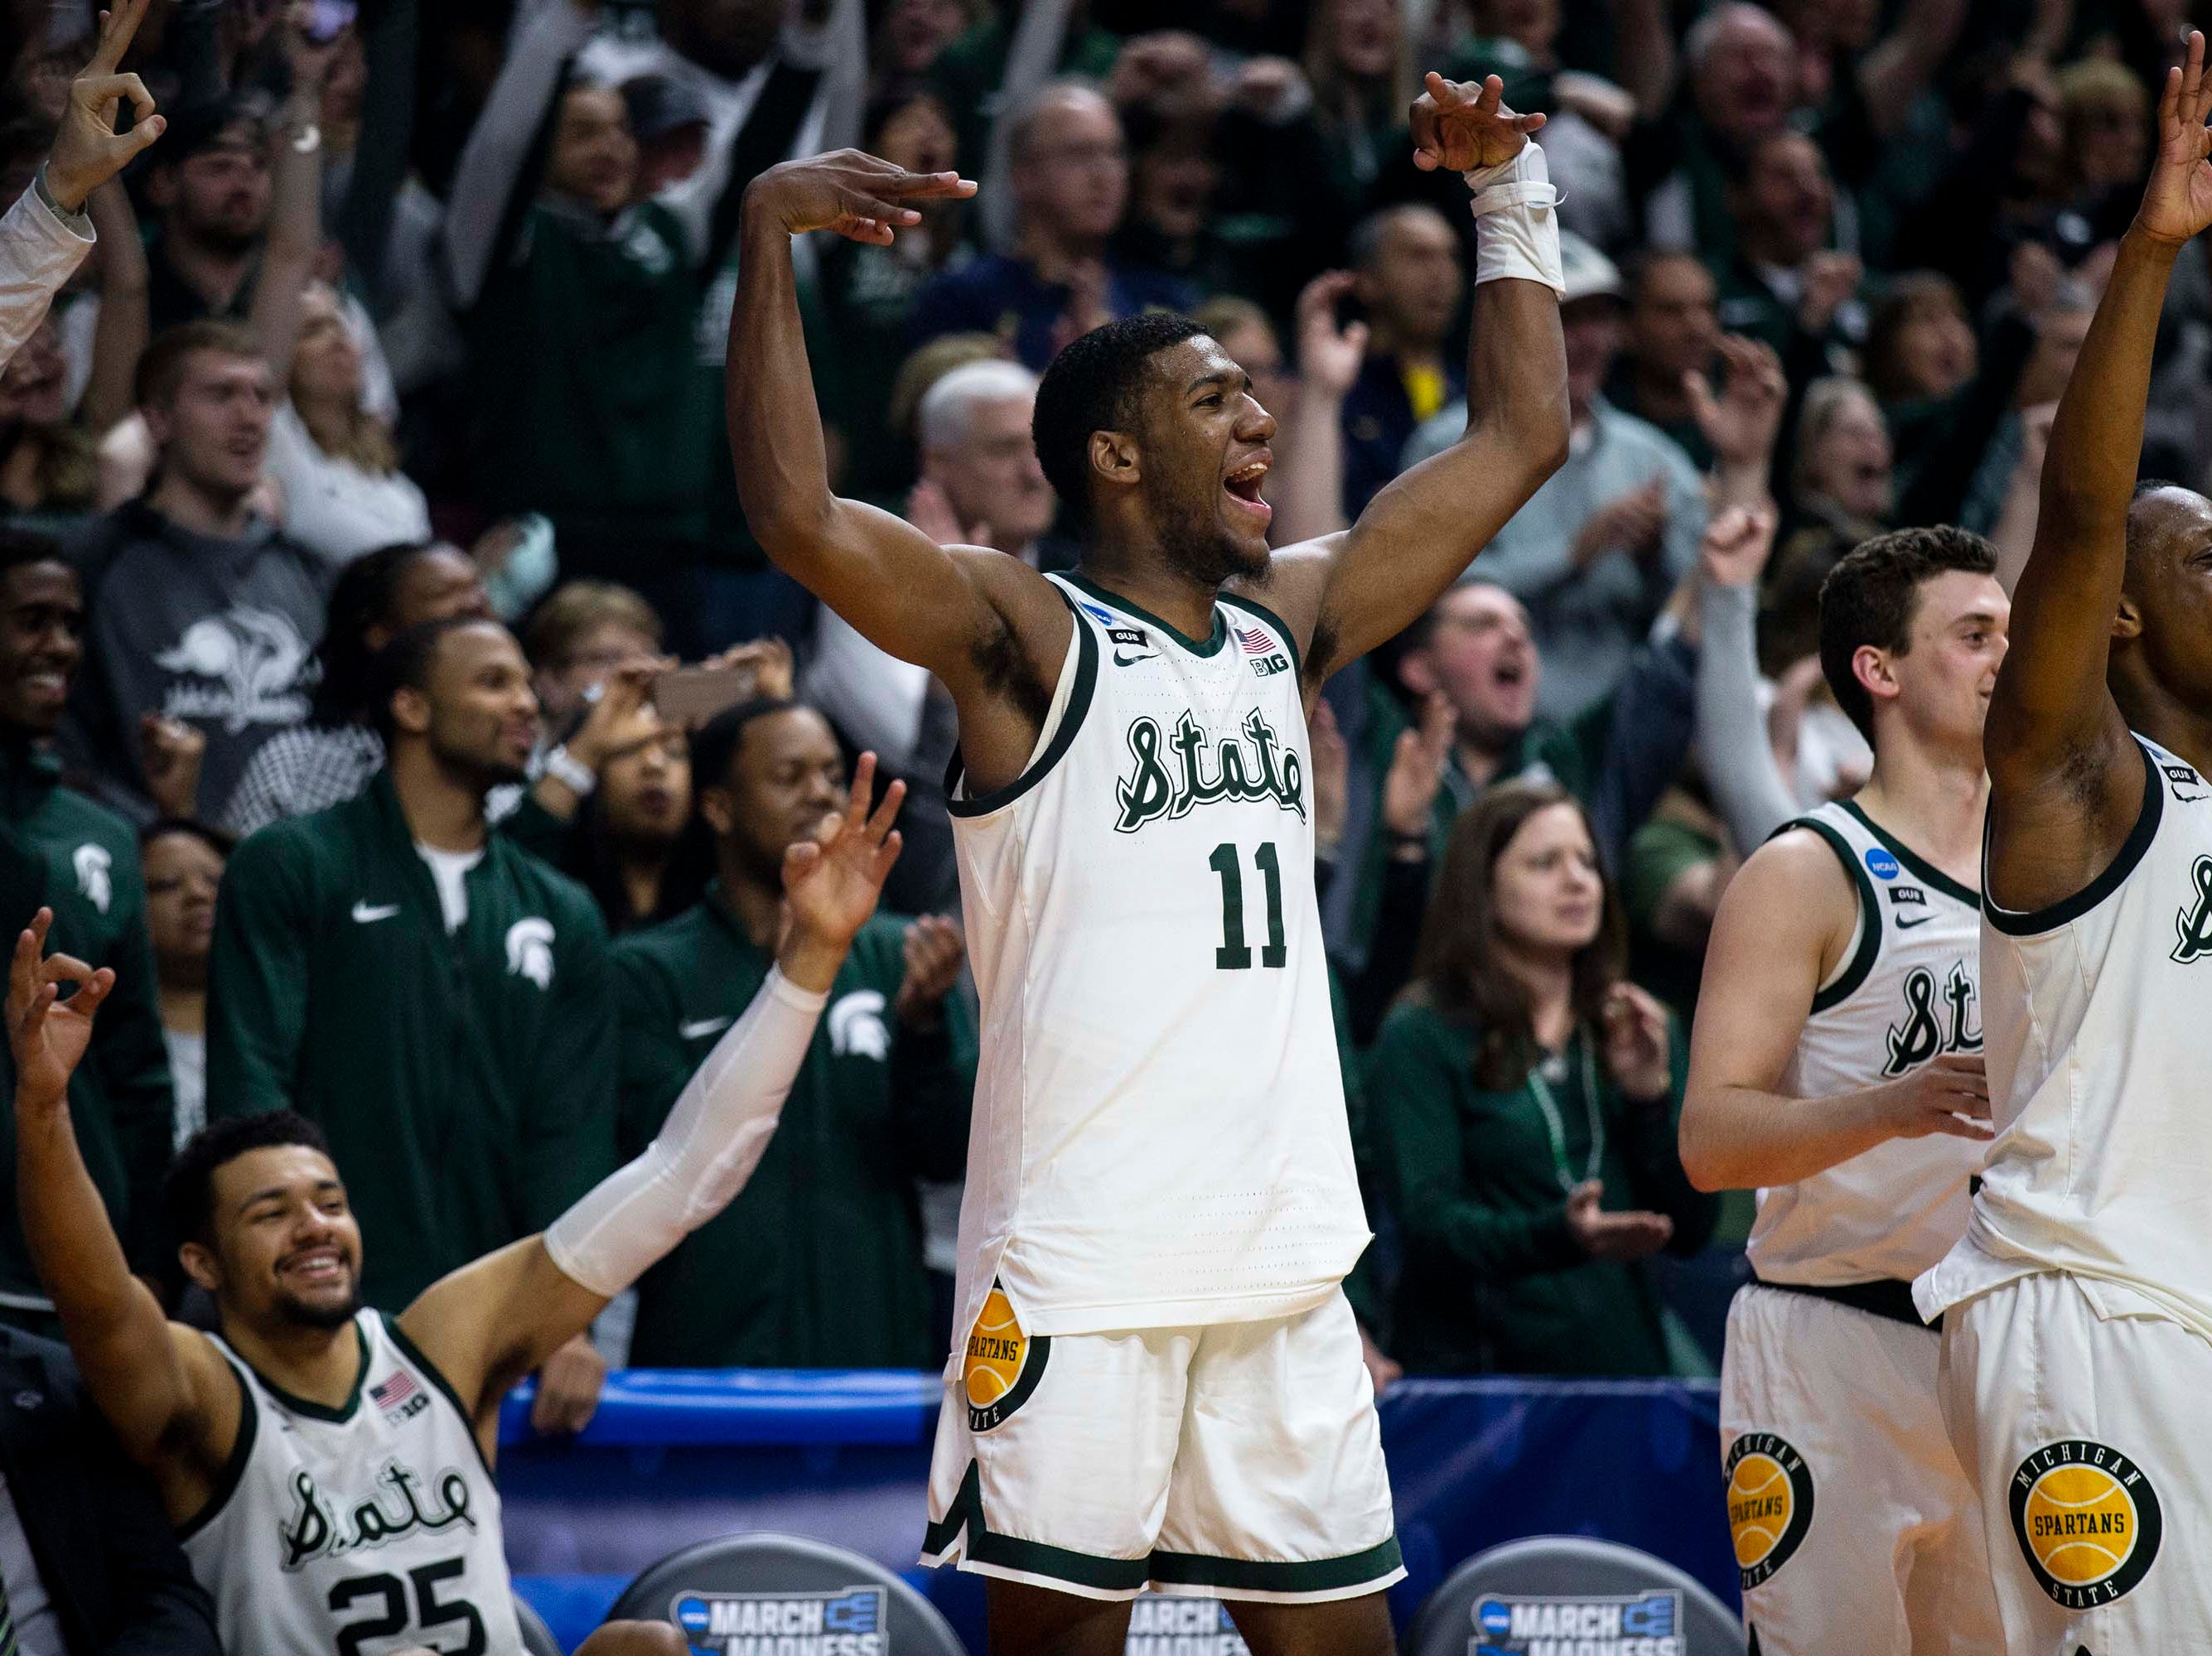 Michigan State's Aaron Henry celebrates from the bench during the NCAA Tournament second-round match-up between Minnesota and Michigan State on Saturday, March 23, 2019, in Wells Fargo Arena in Des Moines, Iowa.